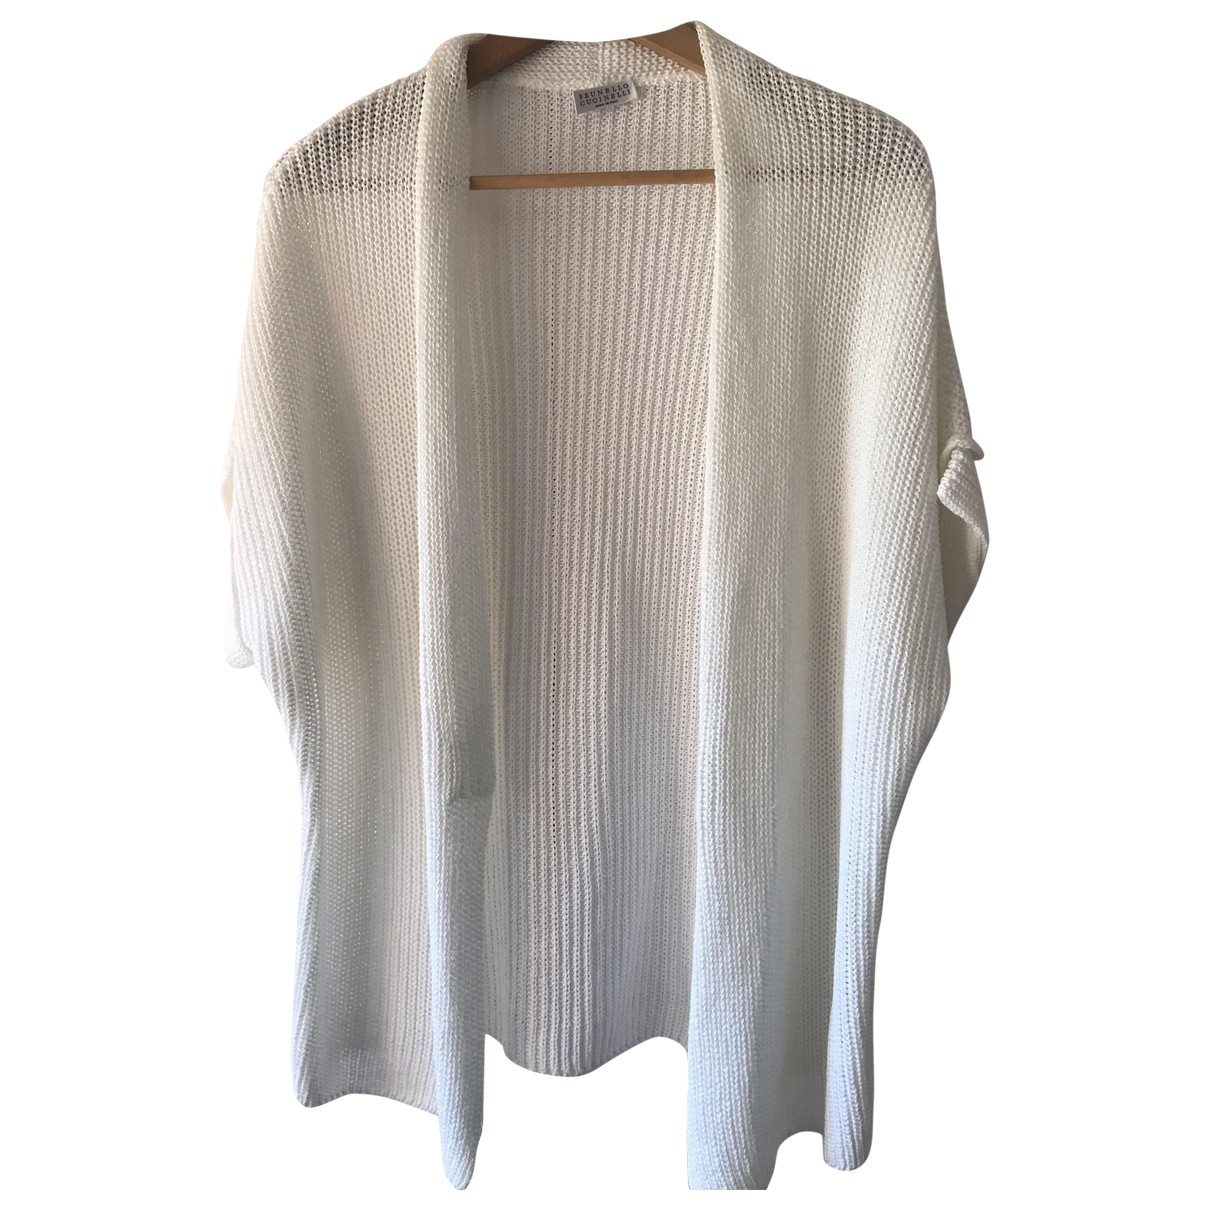 Brunello Cucinelli \N White Cotton Knitwear for Women XL International